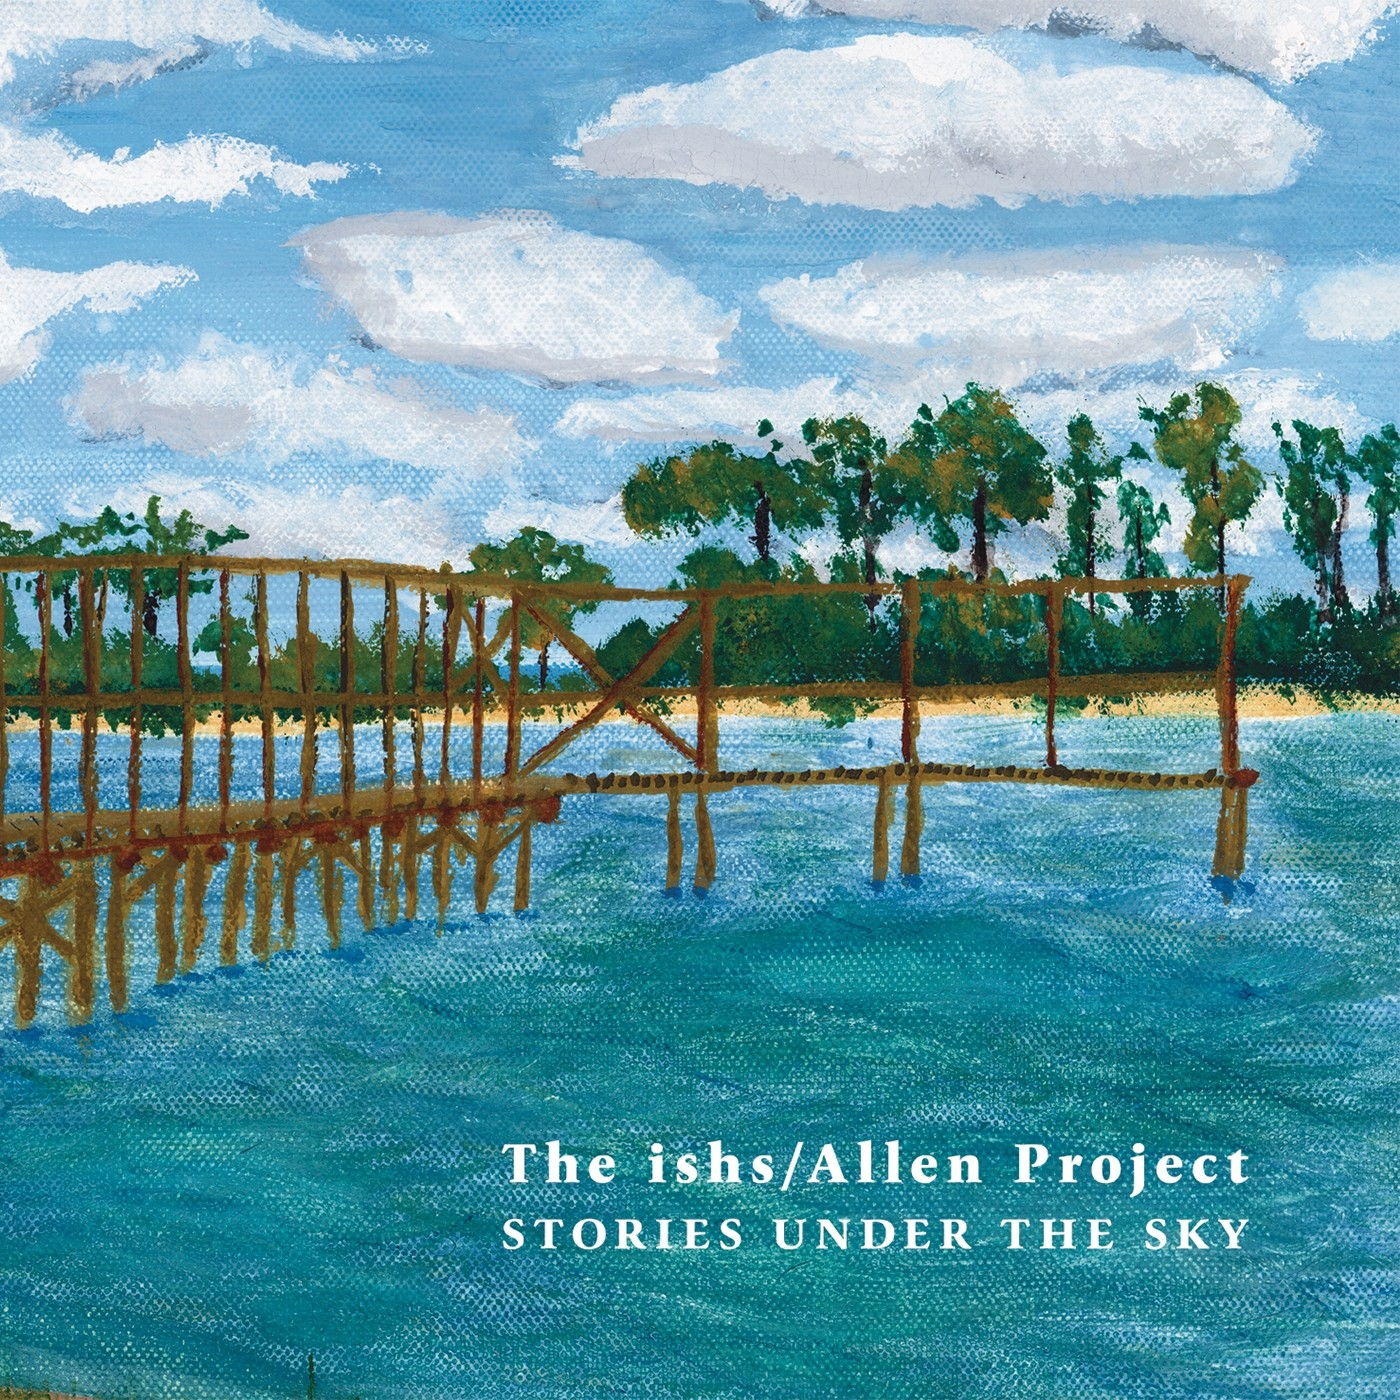 The ishs/Allen Project - Stories Under the Sky